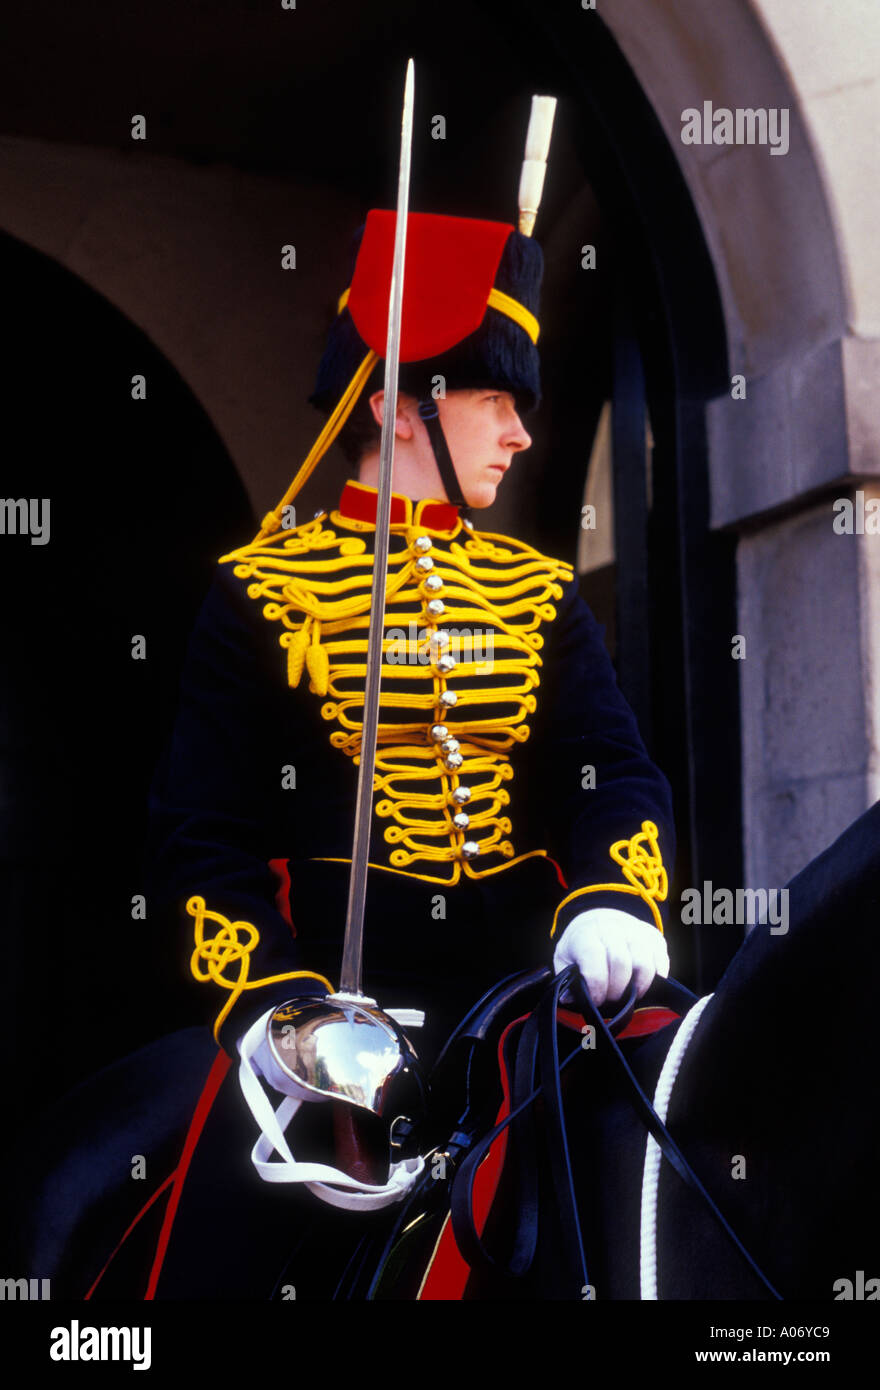 adult woman, female Horse Guard, Horse Guard, Horse Guard of Household Cavalry, Household Cavalry, Horse Guards, London, England - Stock Image